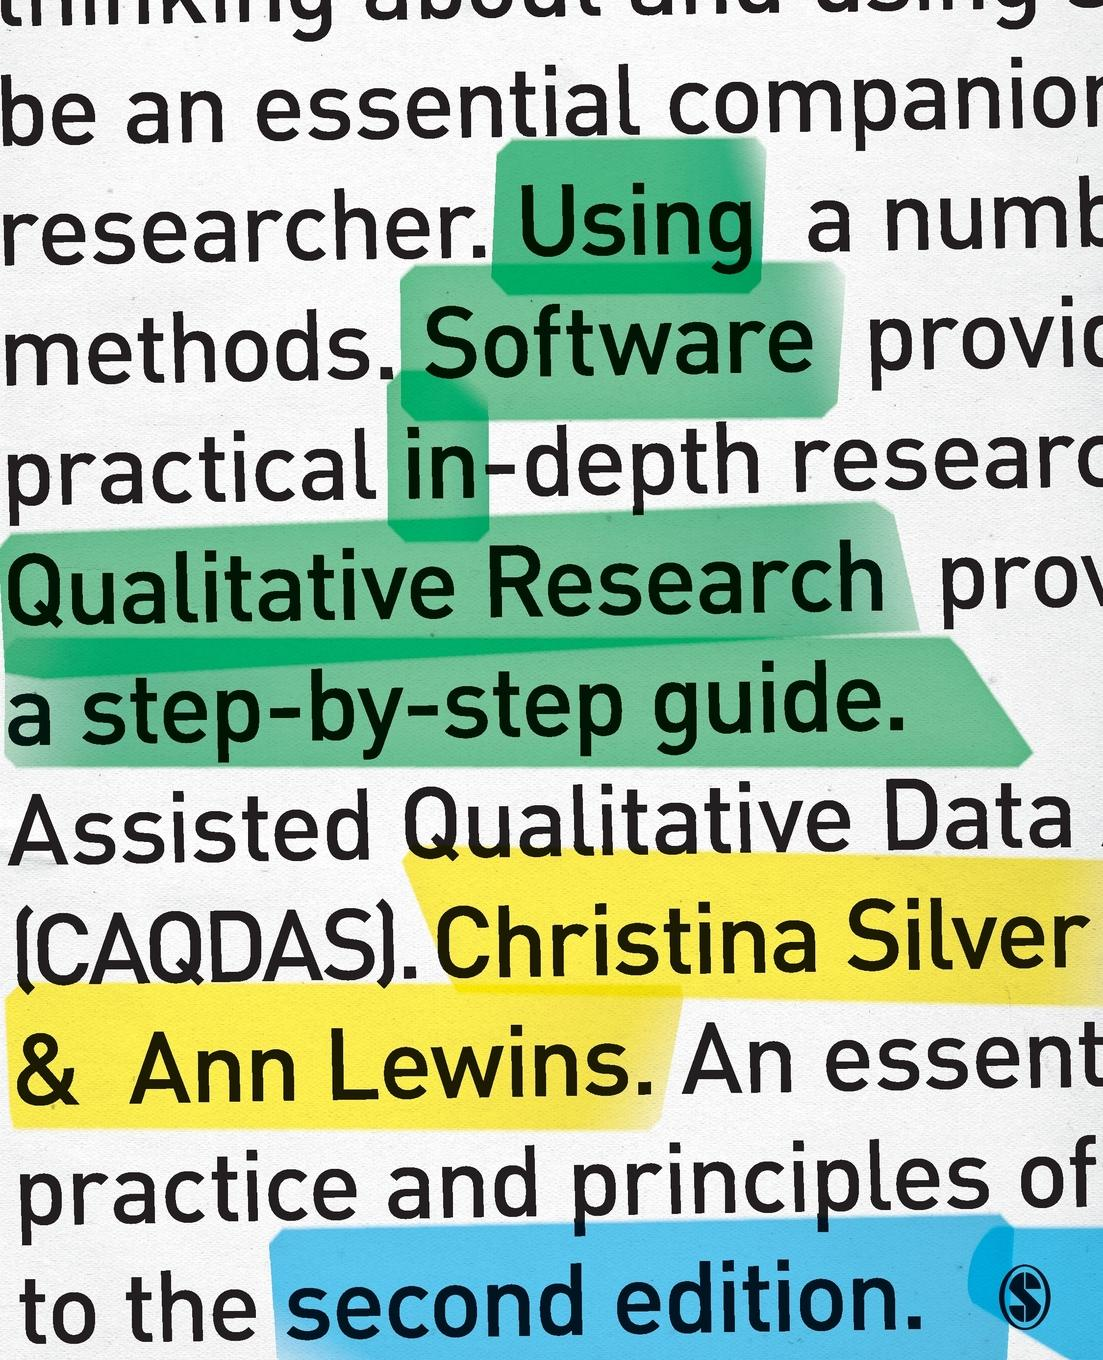 Christina Silver, Ann Lewins Using Software in Qualitative Research. A Step-By-Step Guide